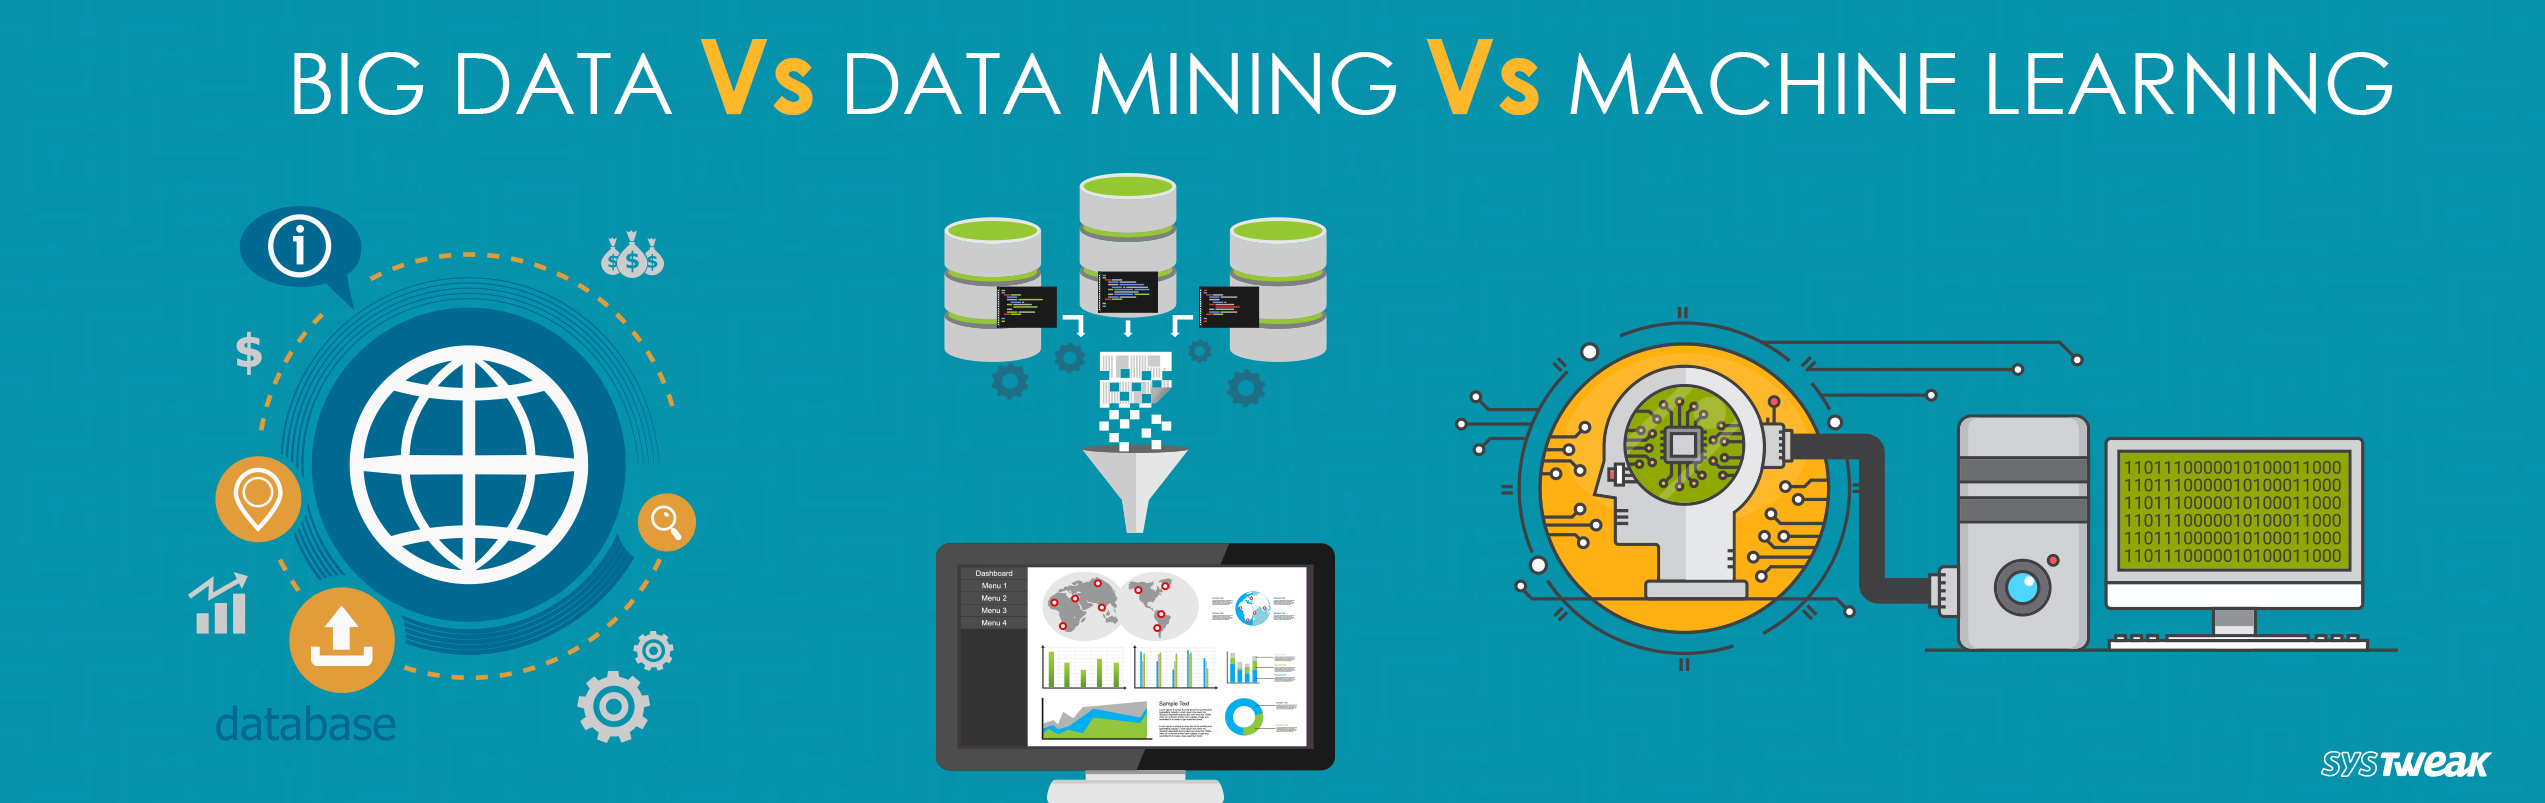 Understanding The Difference Between Big Data, Data Mining And Machine Learning